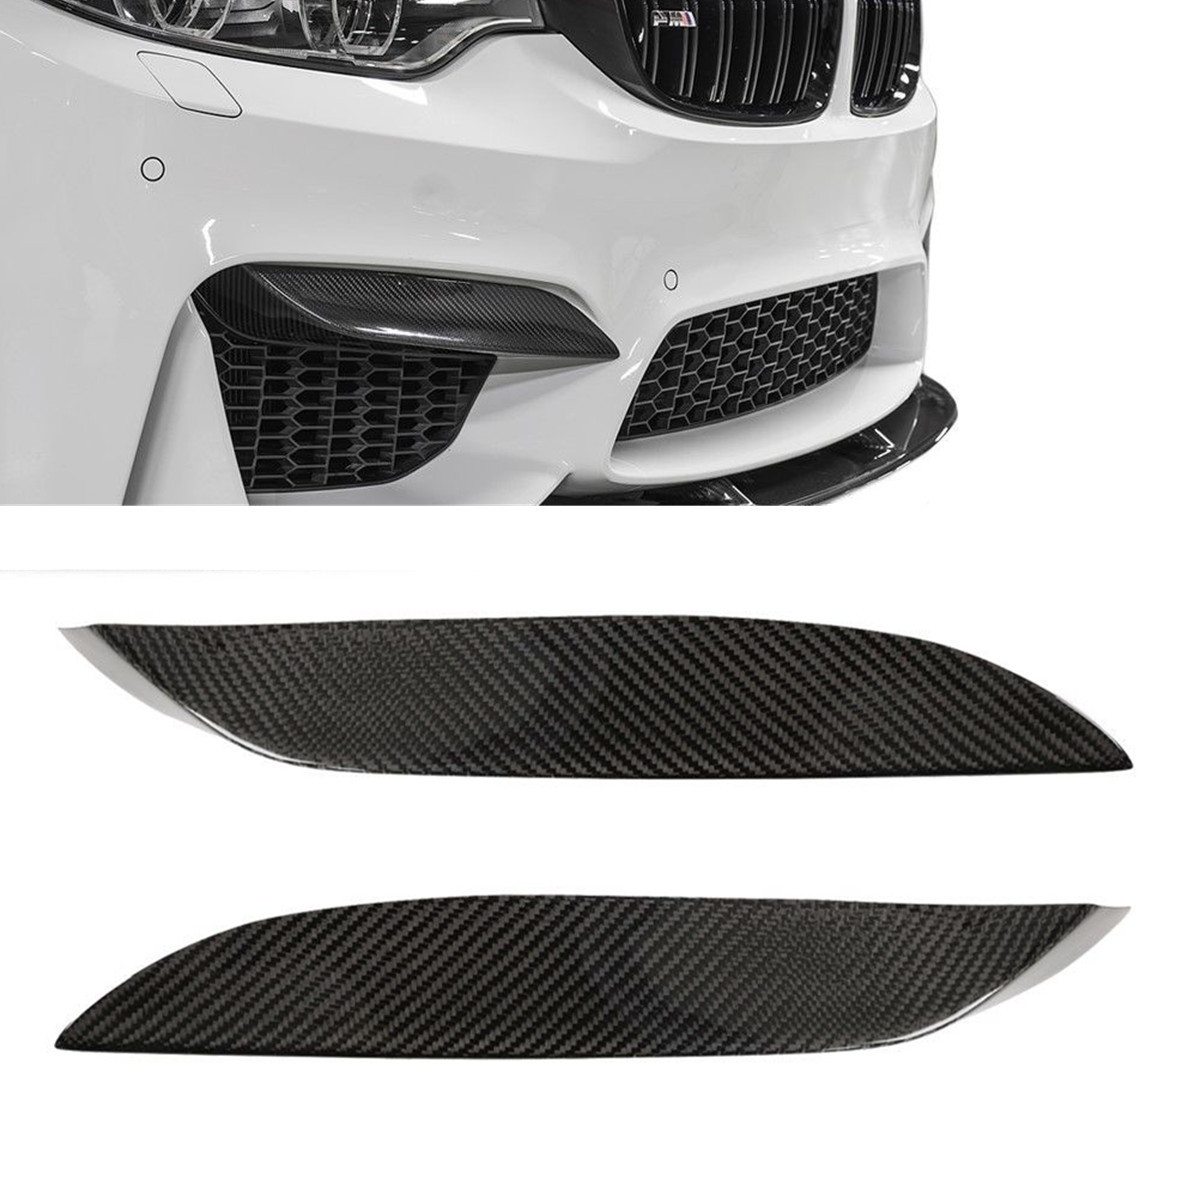 2PCS Real Carbon Fiber Car Front Bumper Lip Diffuser Upper Side Splitter Canards Lip Trim For BMW F80 M3 F82 F83 M4 2015-2018 image